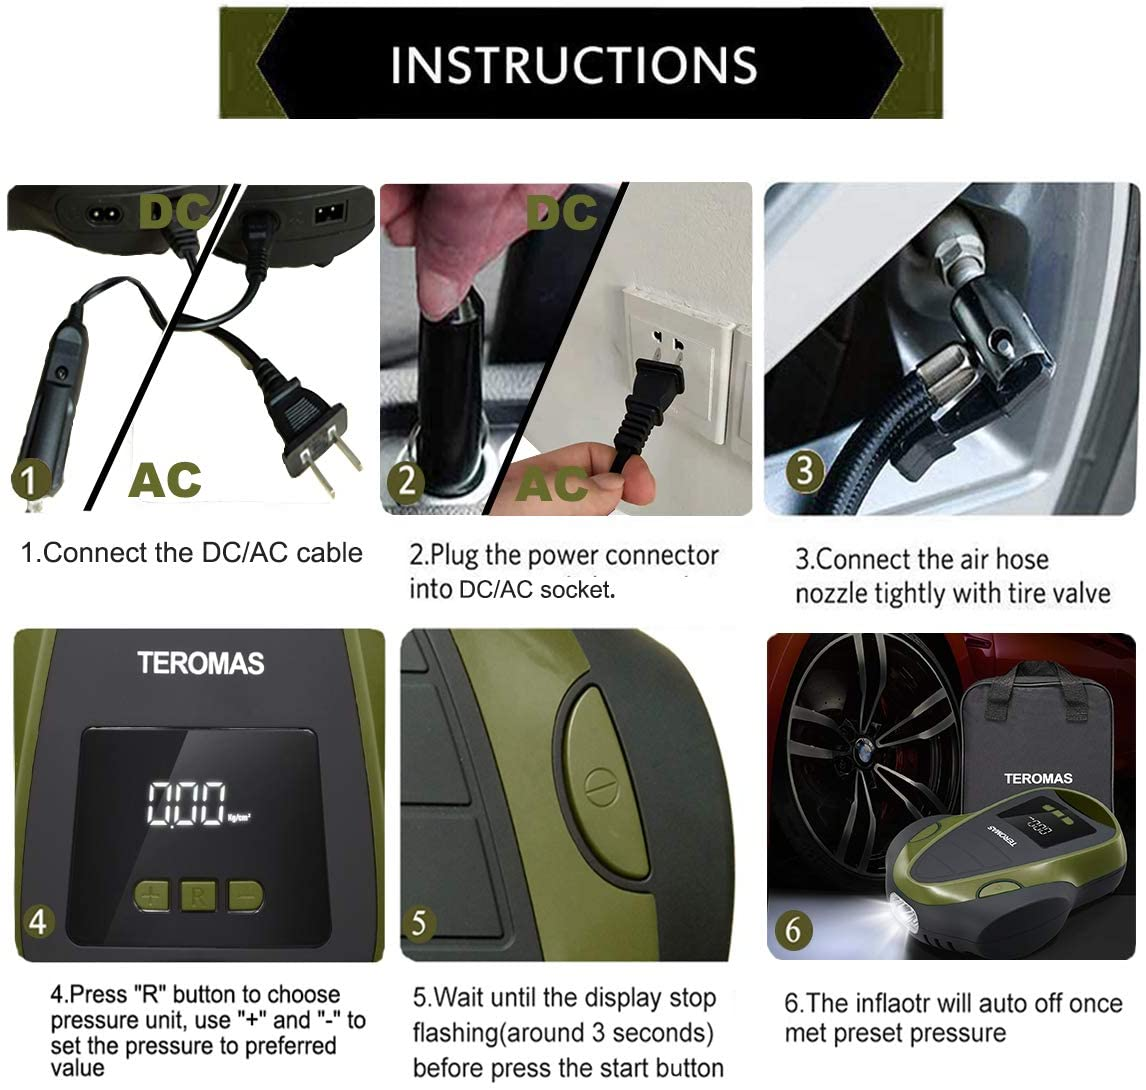 Portable DC//AC Air Pump for Car Tires 12V DC and Other Inflatables at Home 110V AC TEROMAS Tire Inflator Air Compressor Digital Electric Tire Pump with Pressure Gauge Green